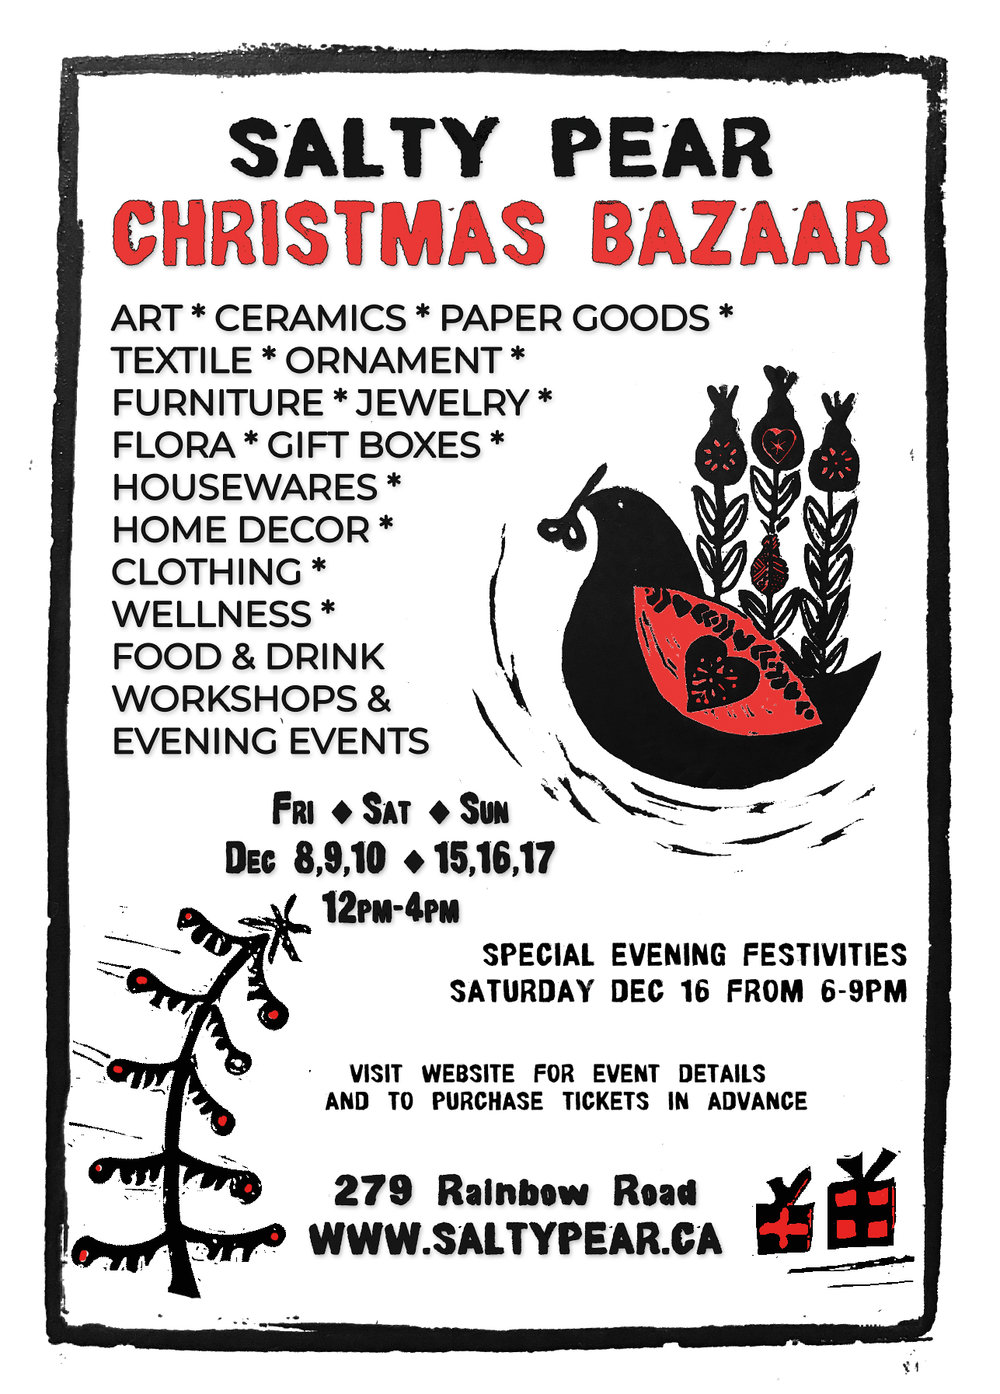 Salty-Pear-Bazaar-Small-Flyer.jpg